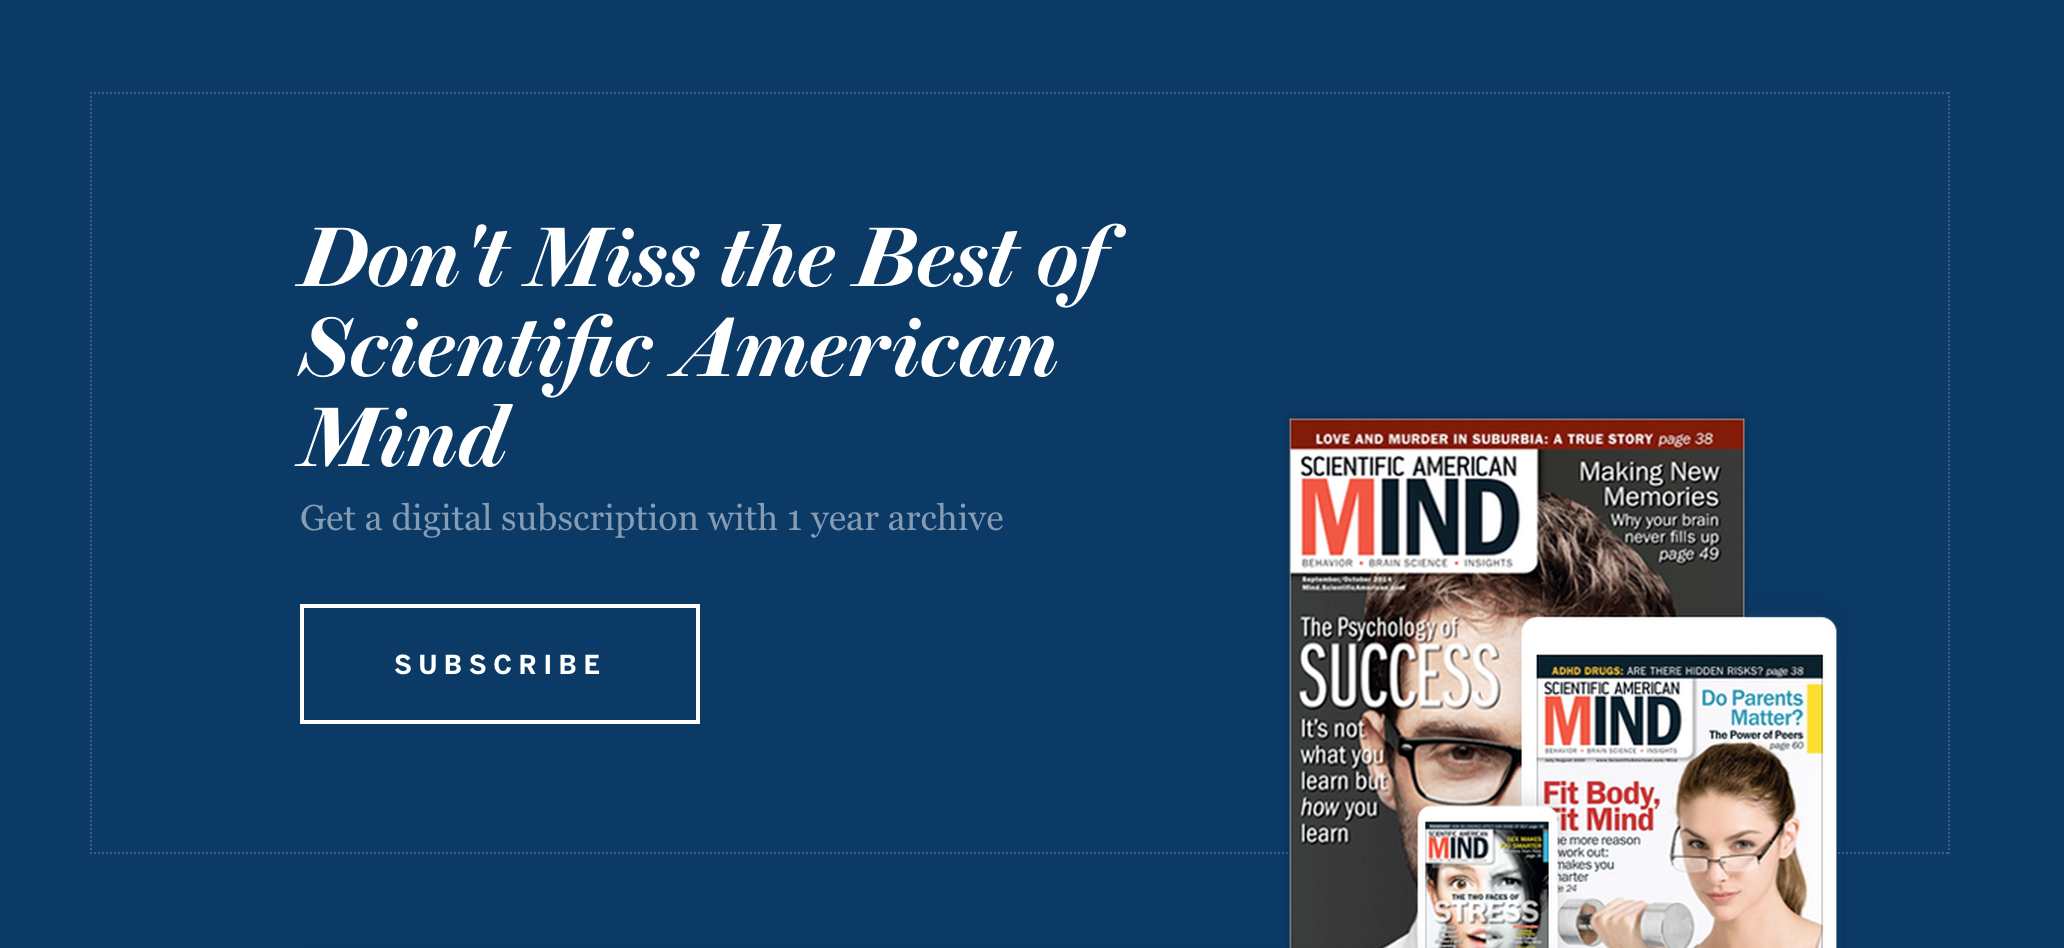 Scientific American Mind Subscriptions